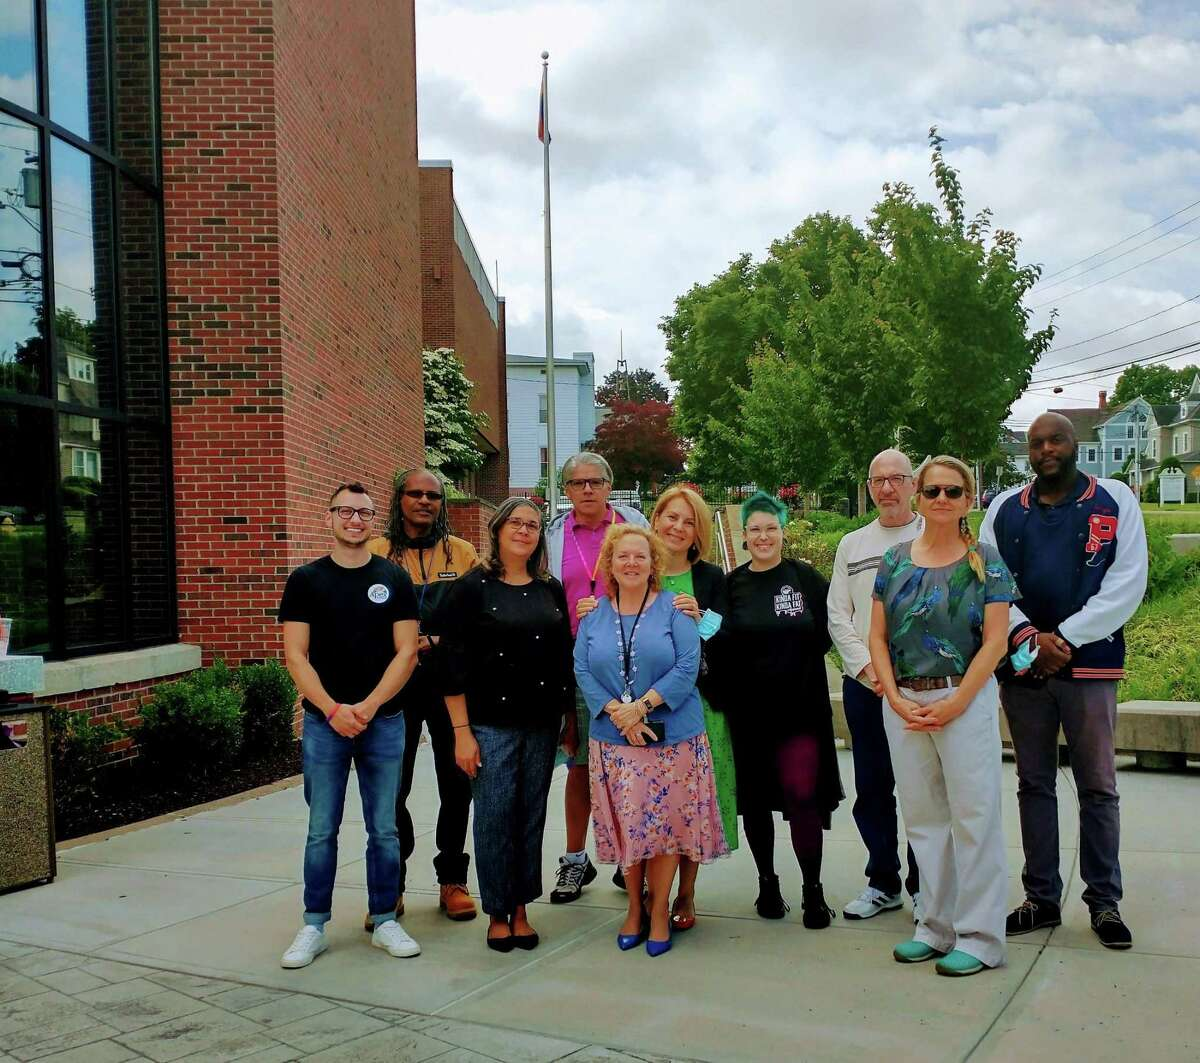 Andrea Gartner, Democratic Comittee Chairman, alongside others who provide services and support to the LGBTQ community in the region. The group gathered to observe the Pride flag raising at City Hall on June 15.